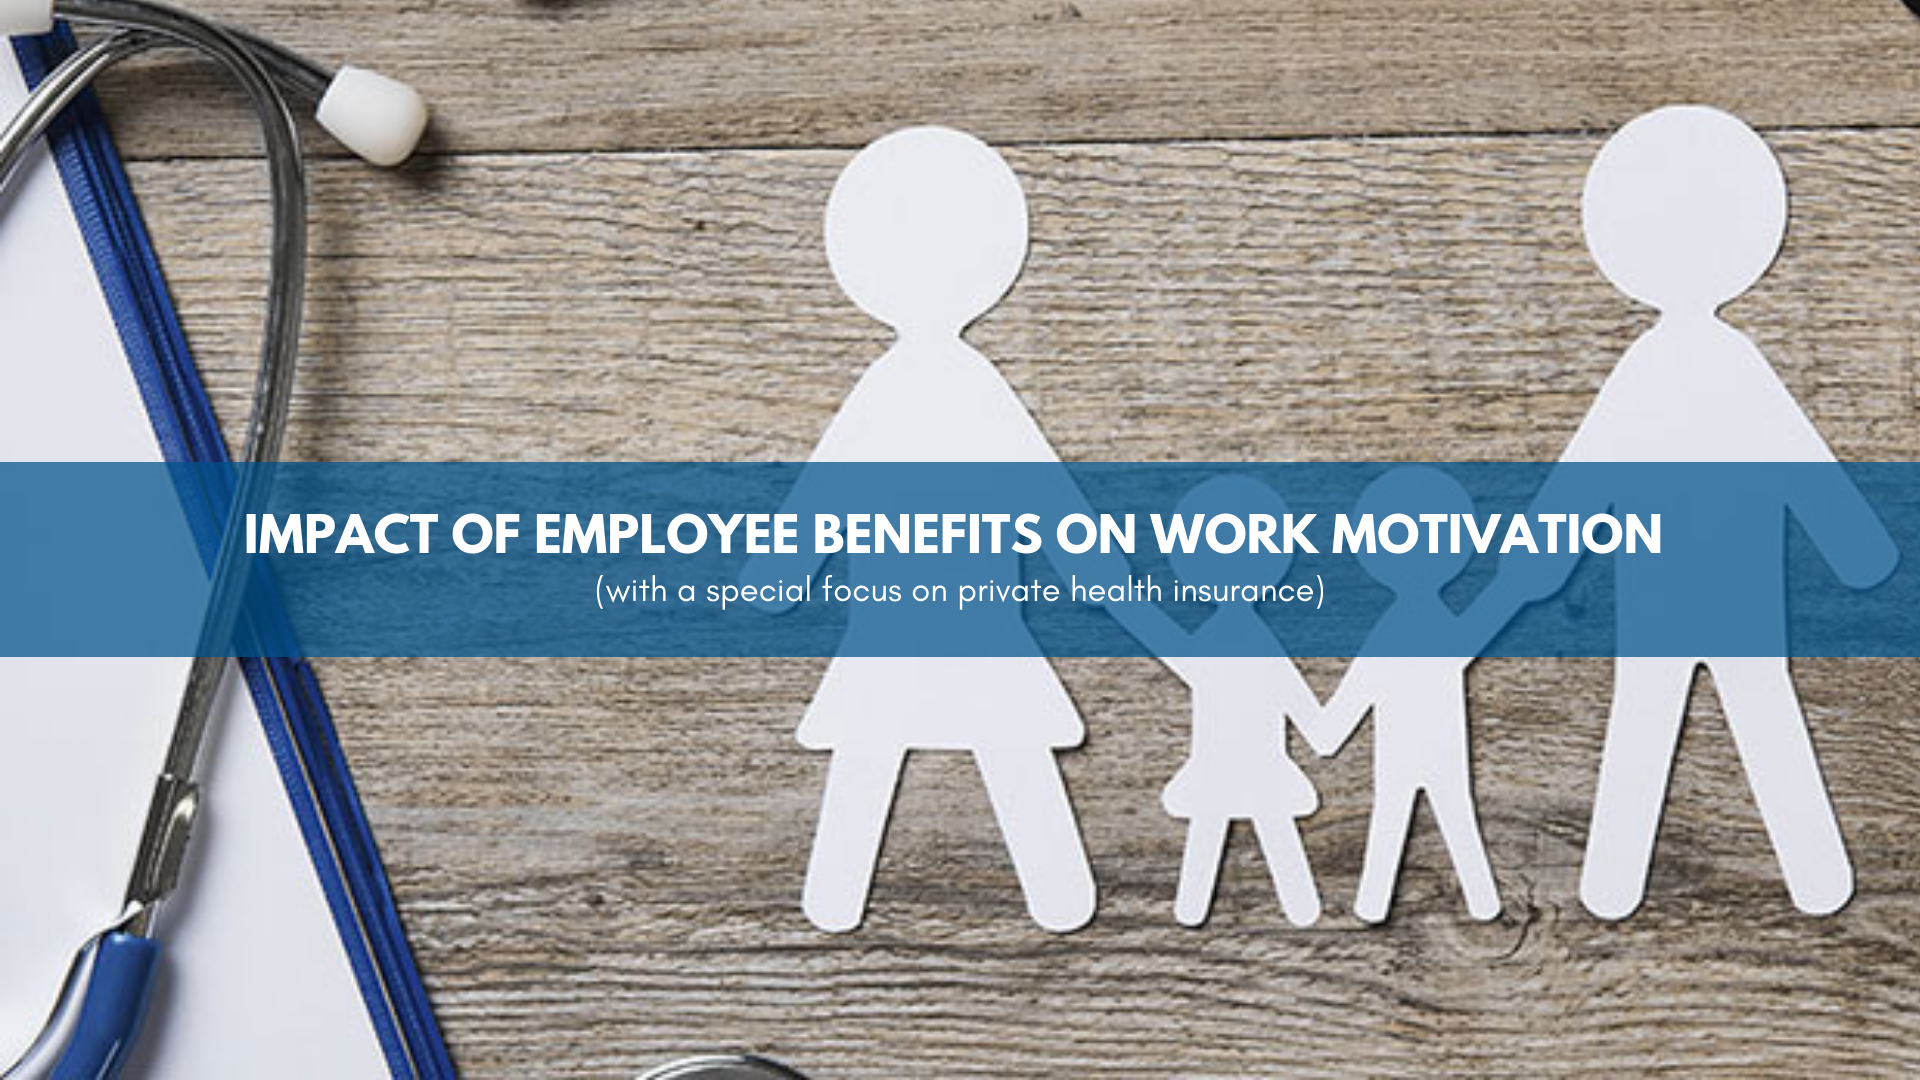 Impact of employee benefits on work motivation (with a special focus on private health insurance)